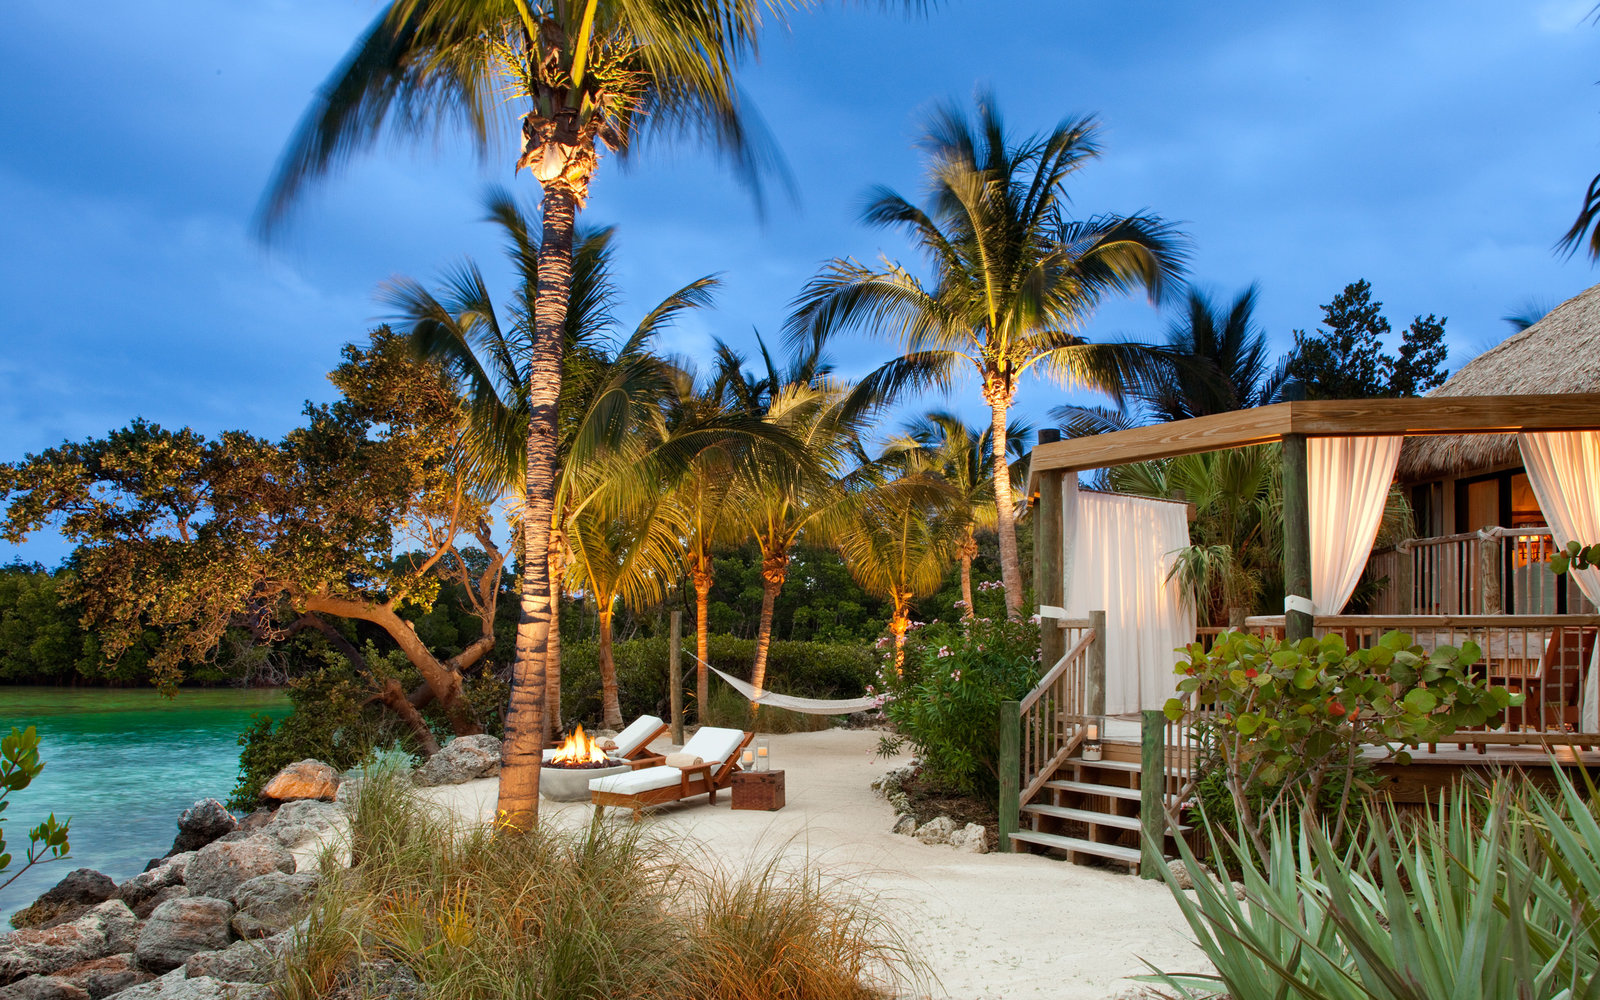 6. Little Palm Island Resort & Spa, Little Torch Key, Florida